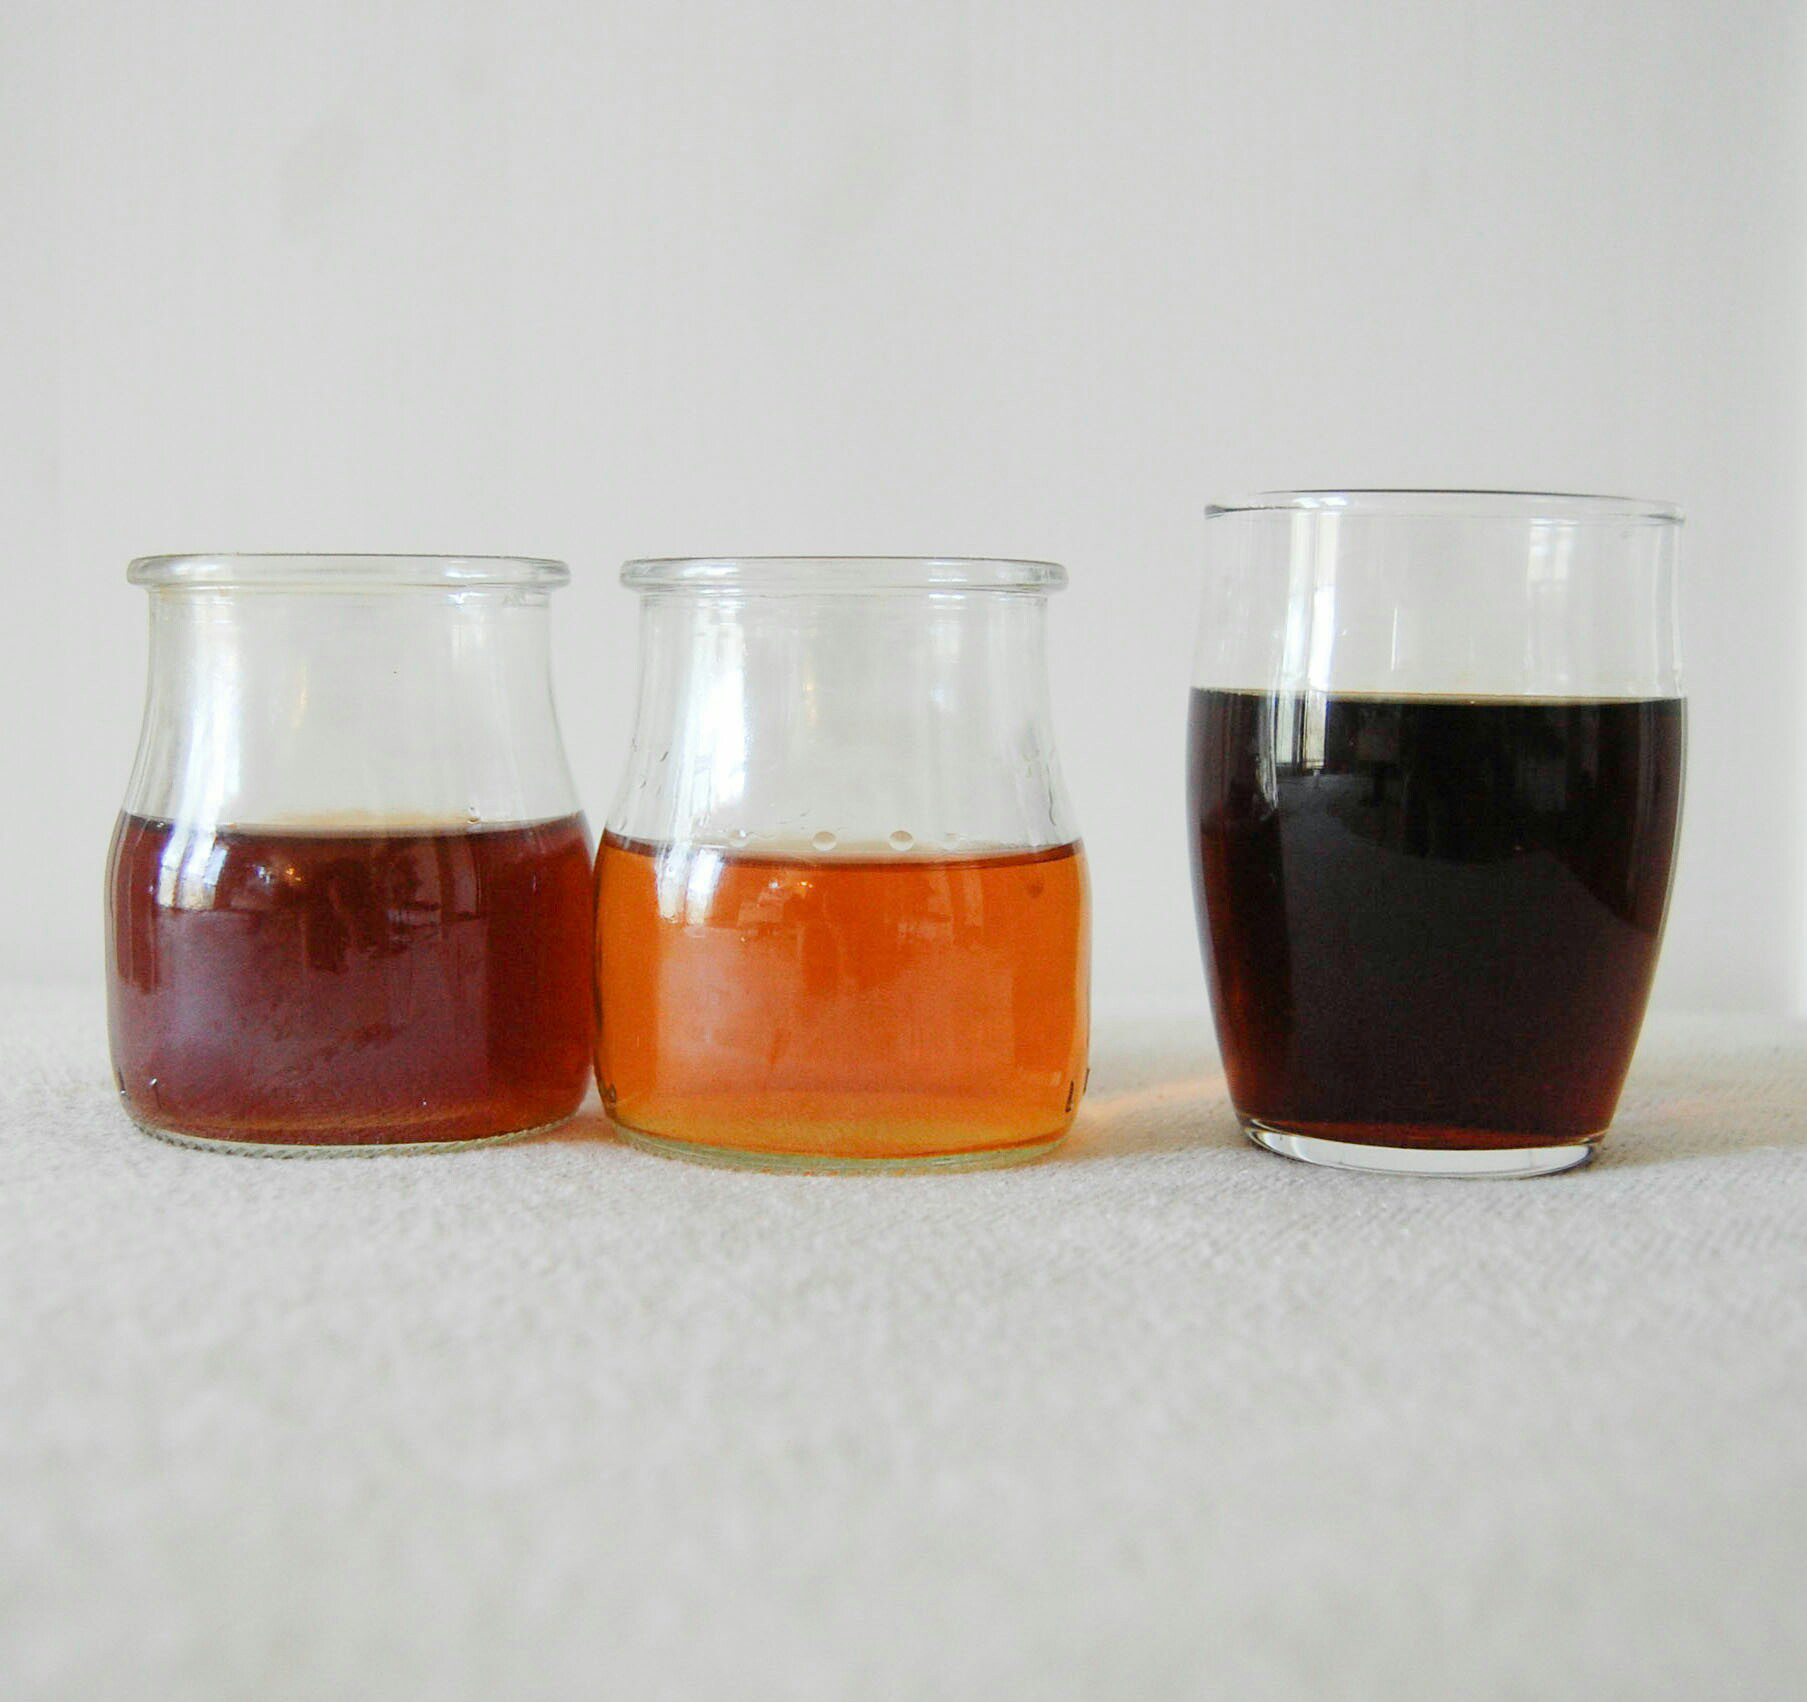 For comparison from left to right: Brewed ceylon, non infused bourbon, Ceylon infused bourbon